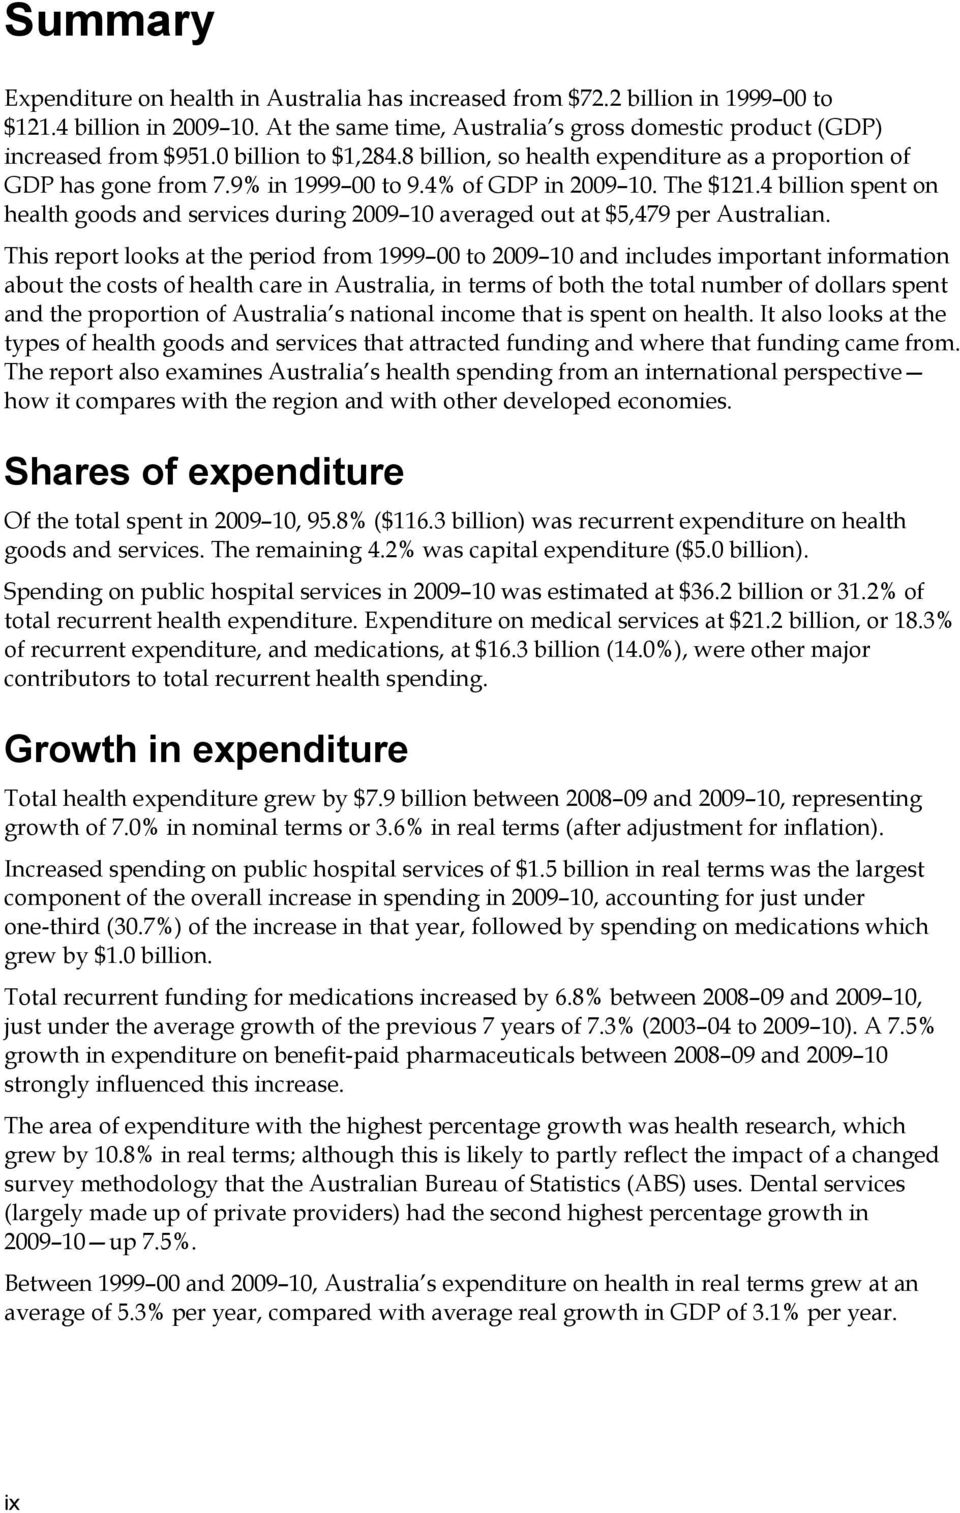 4 billion spent on health goods and services during 2009 10 averaged out at $5,479 per Australian.